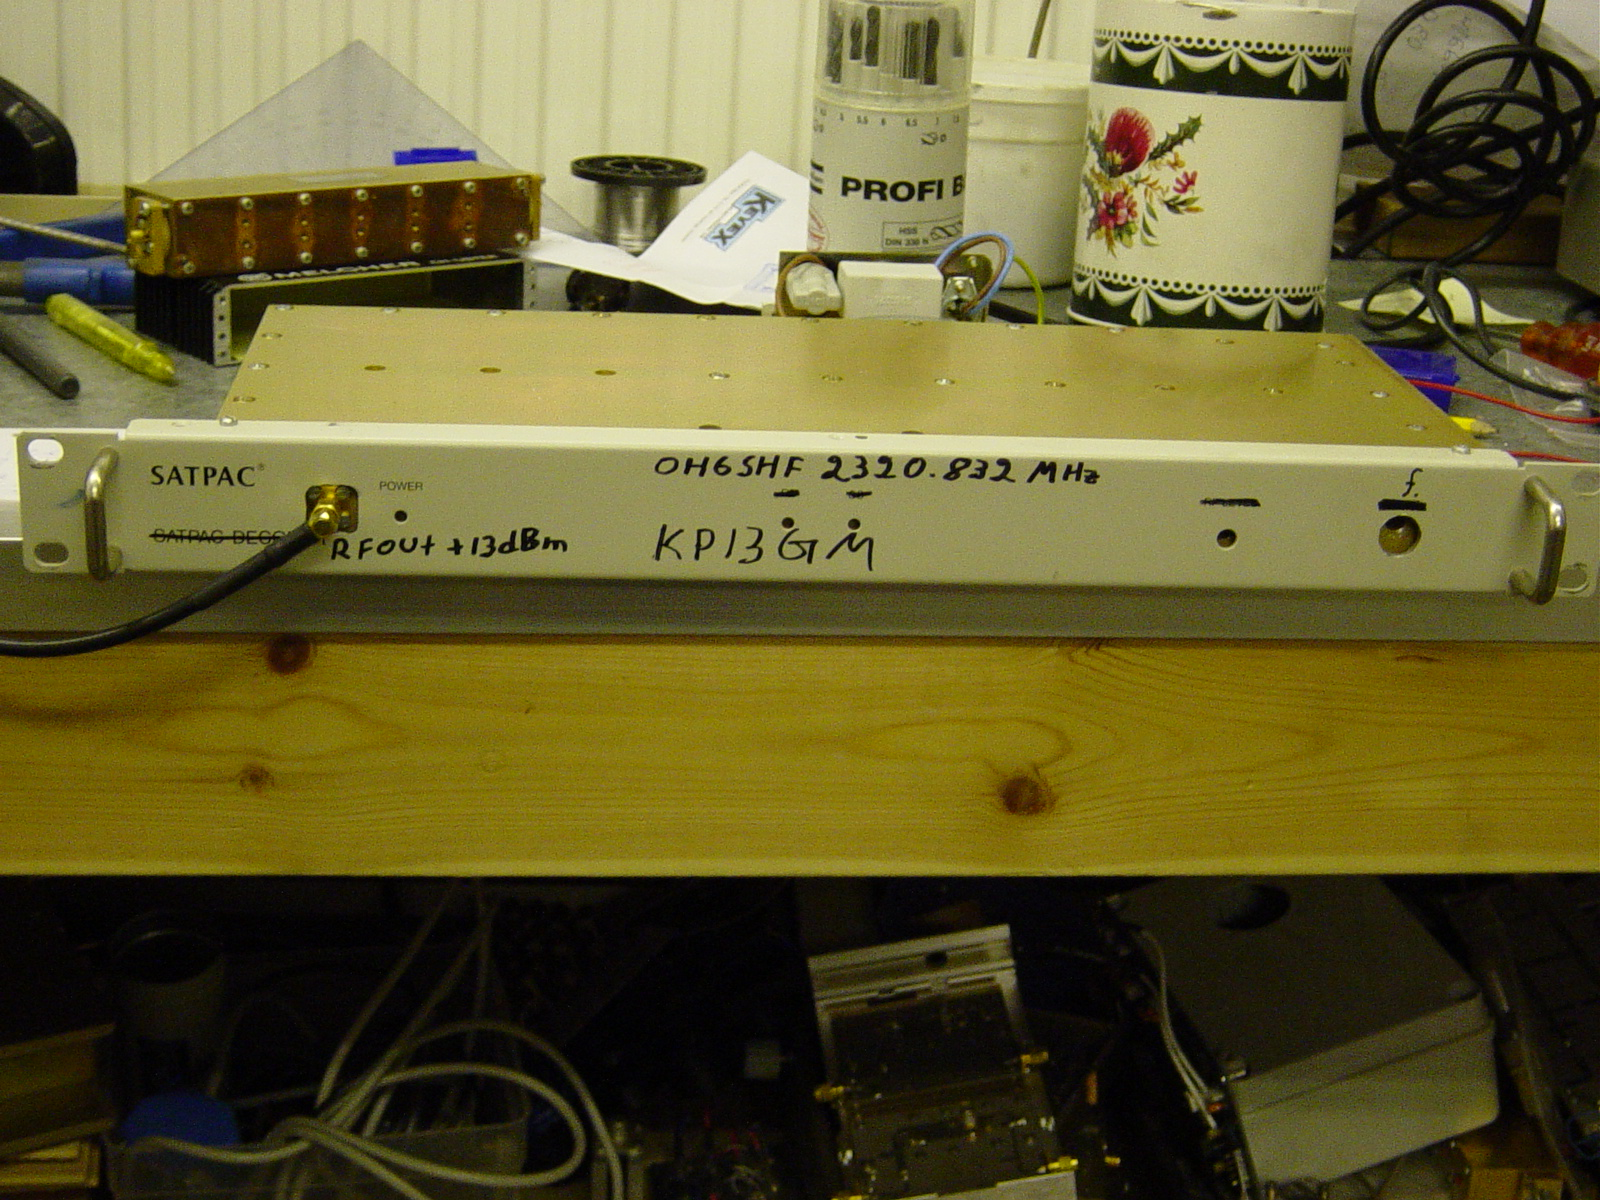 13 cm beacon project OH6SHF 2320 832 Mhz (not yet qrv at